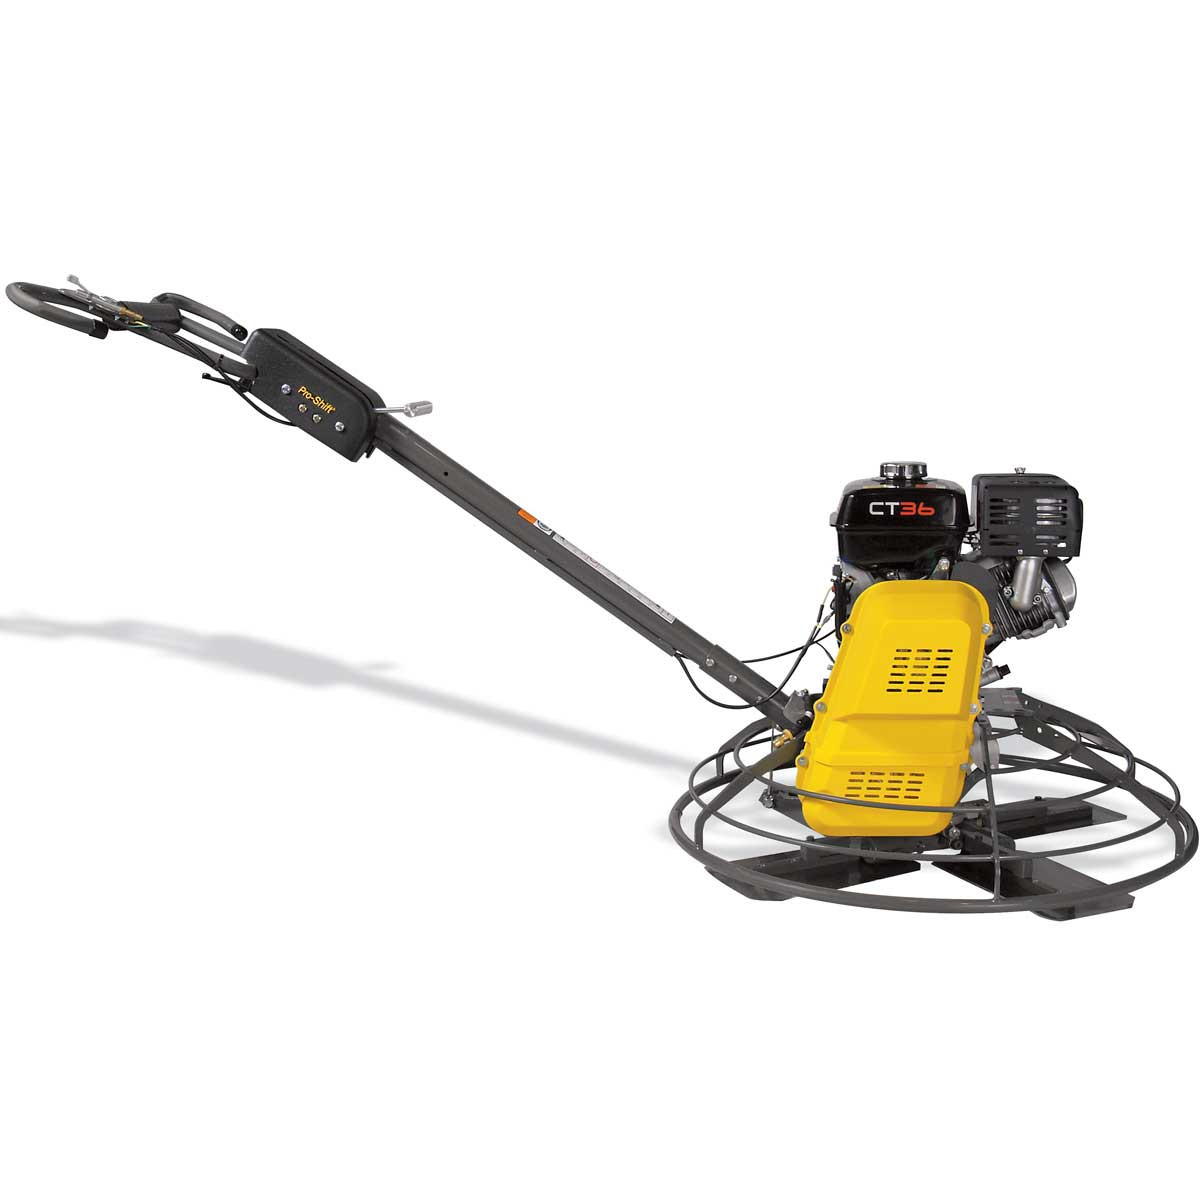 Wacker CT36 variable power trowel